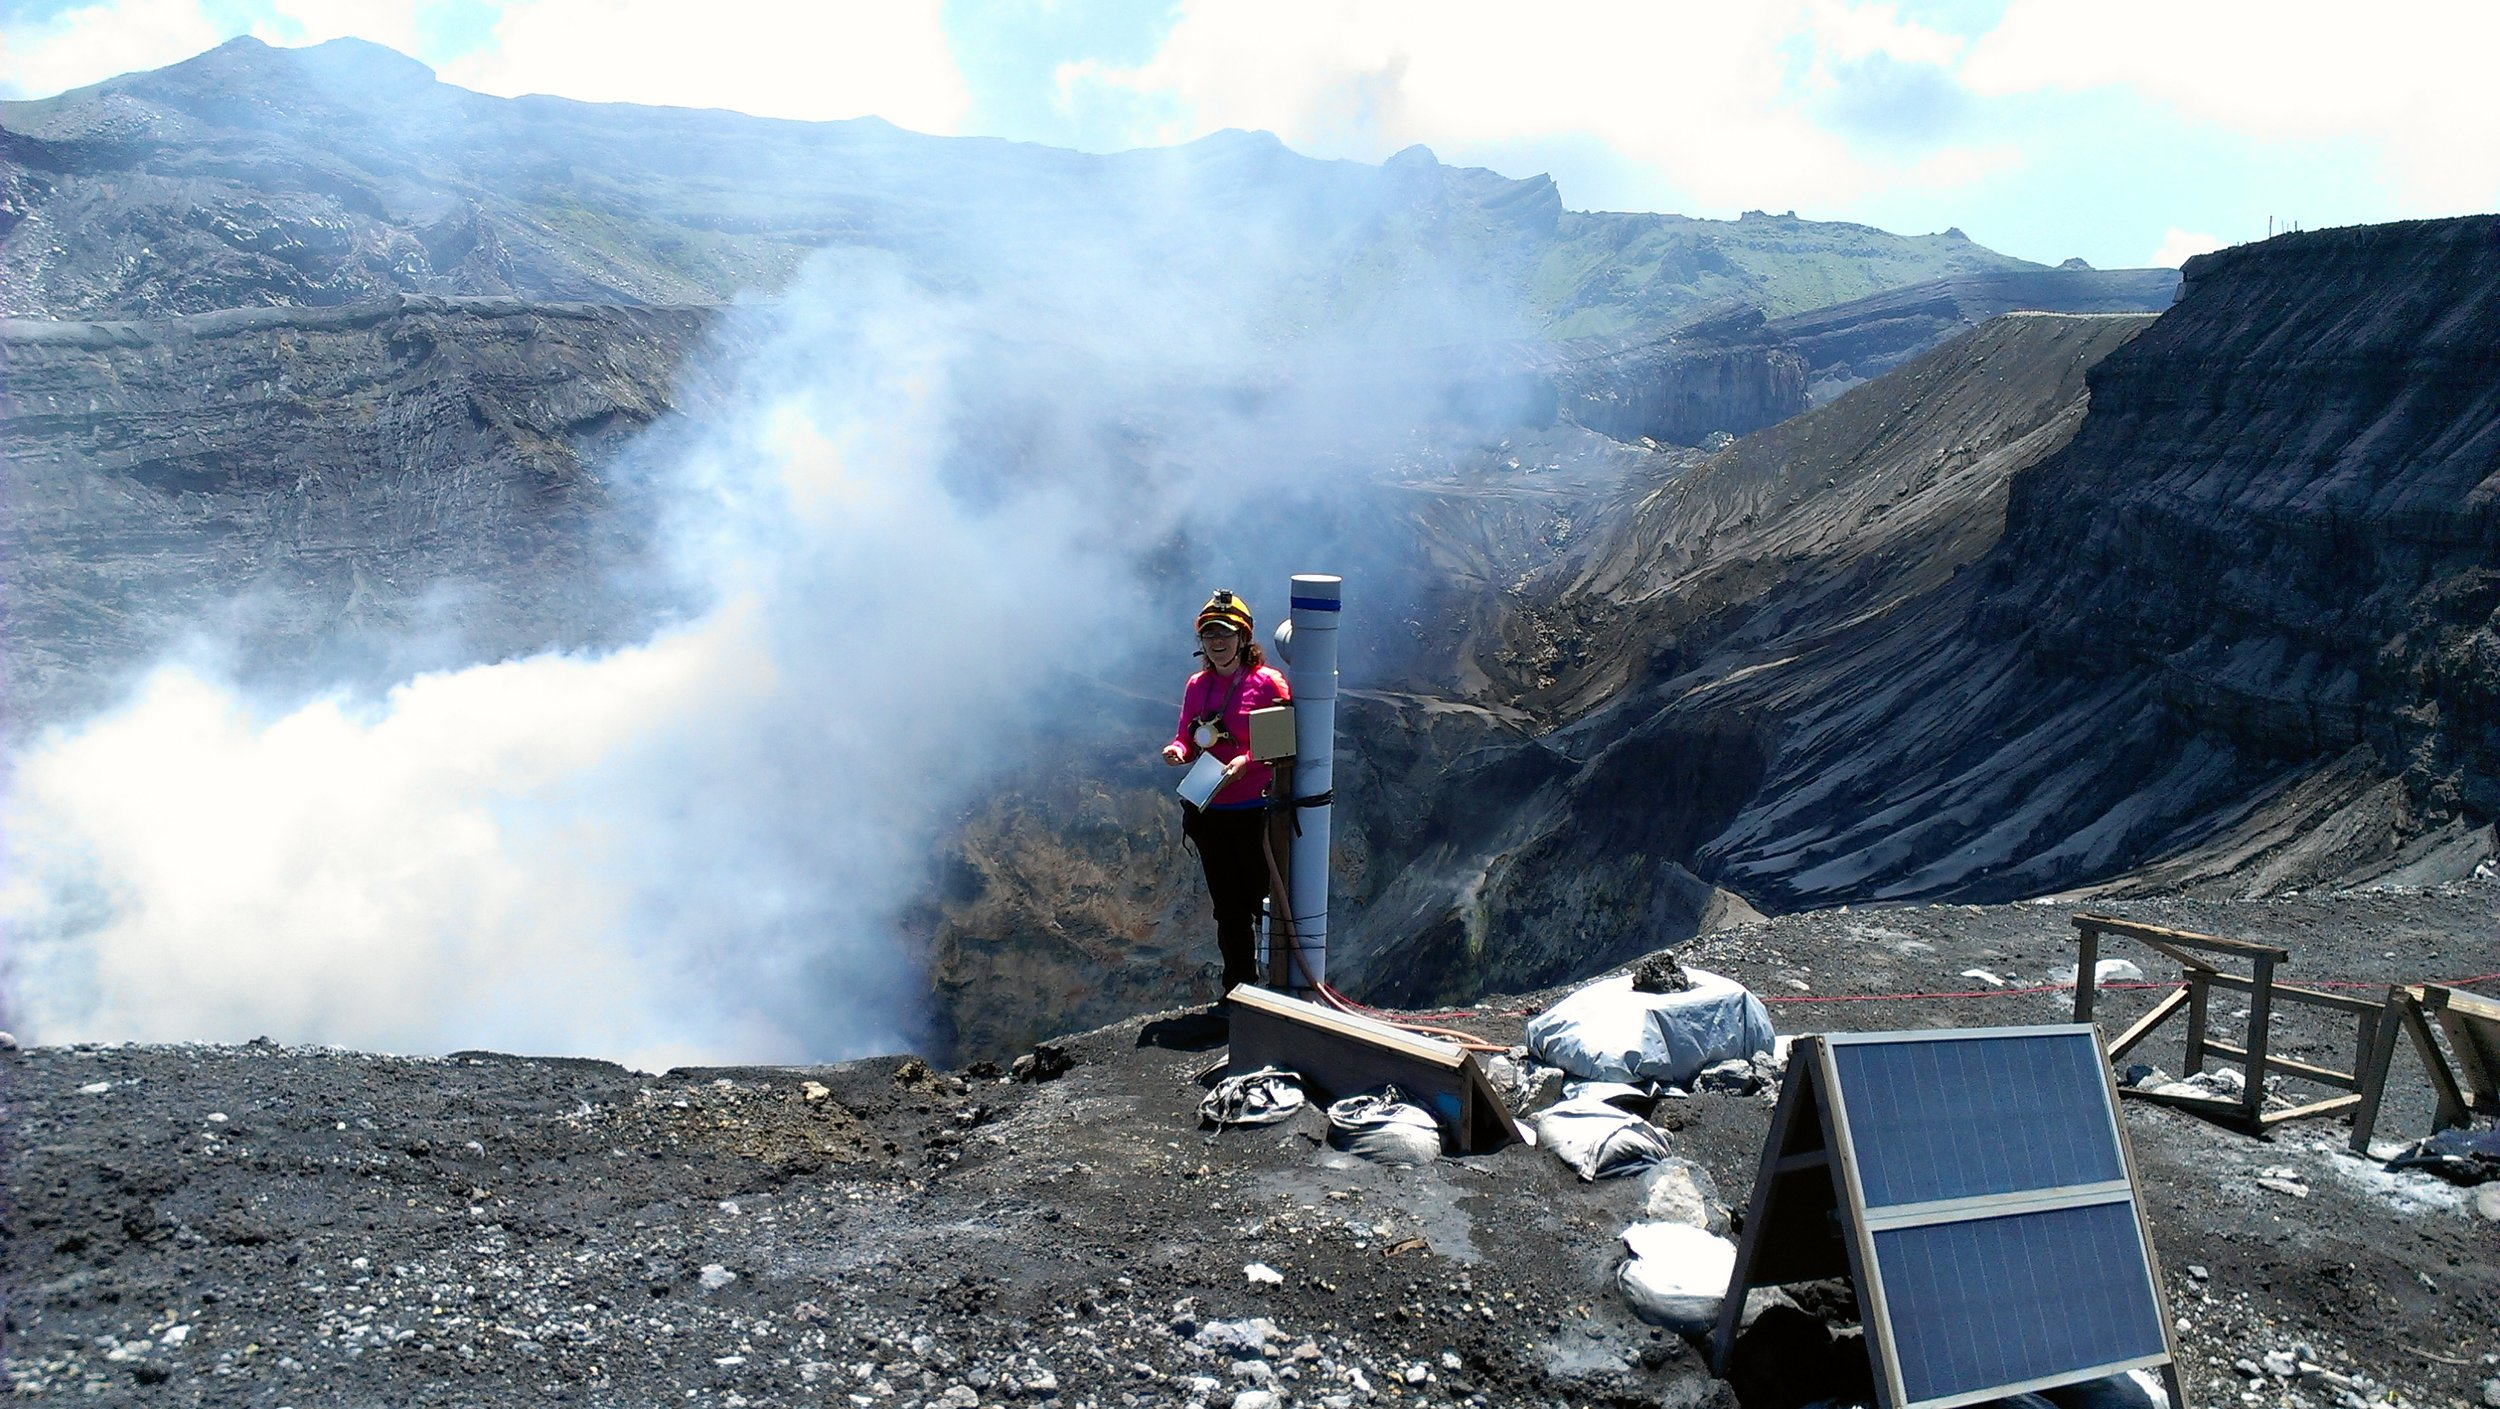 Data Collection, Aso Volcano, Japan -  NSF EAPSI Fumarole Acoustics Project - Summer 2015,  credit: T. Minami